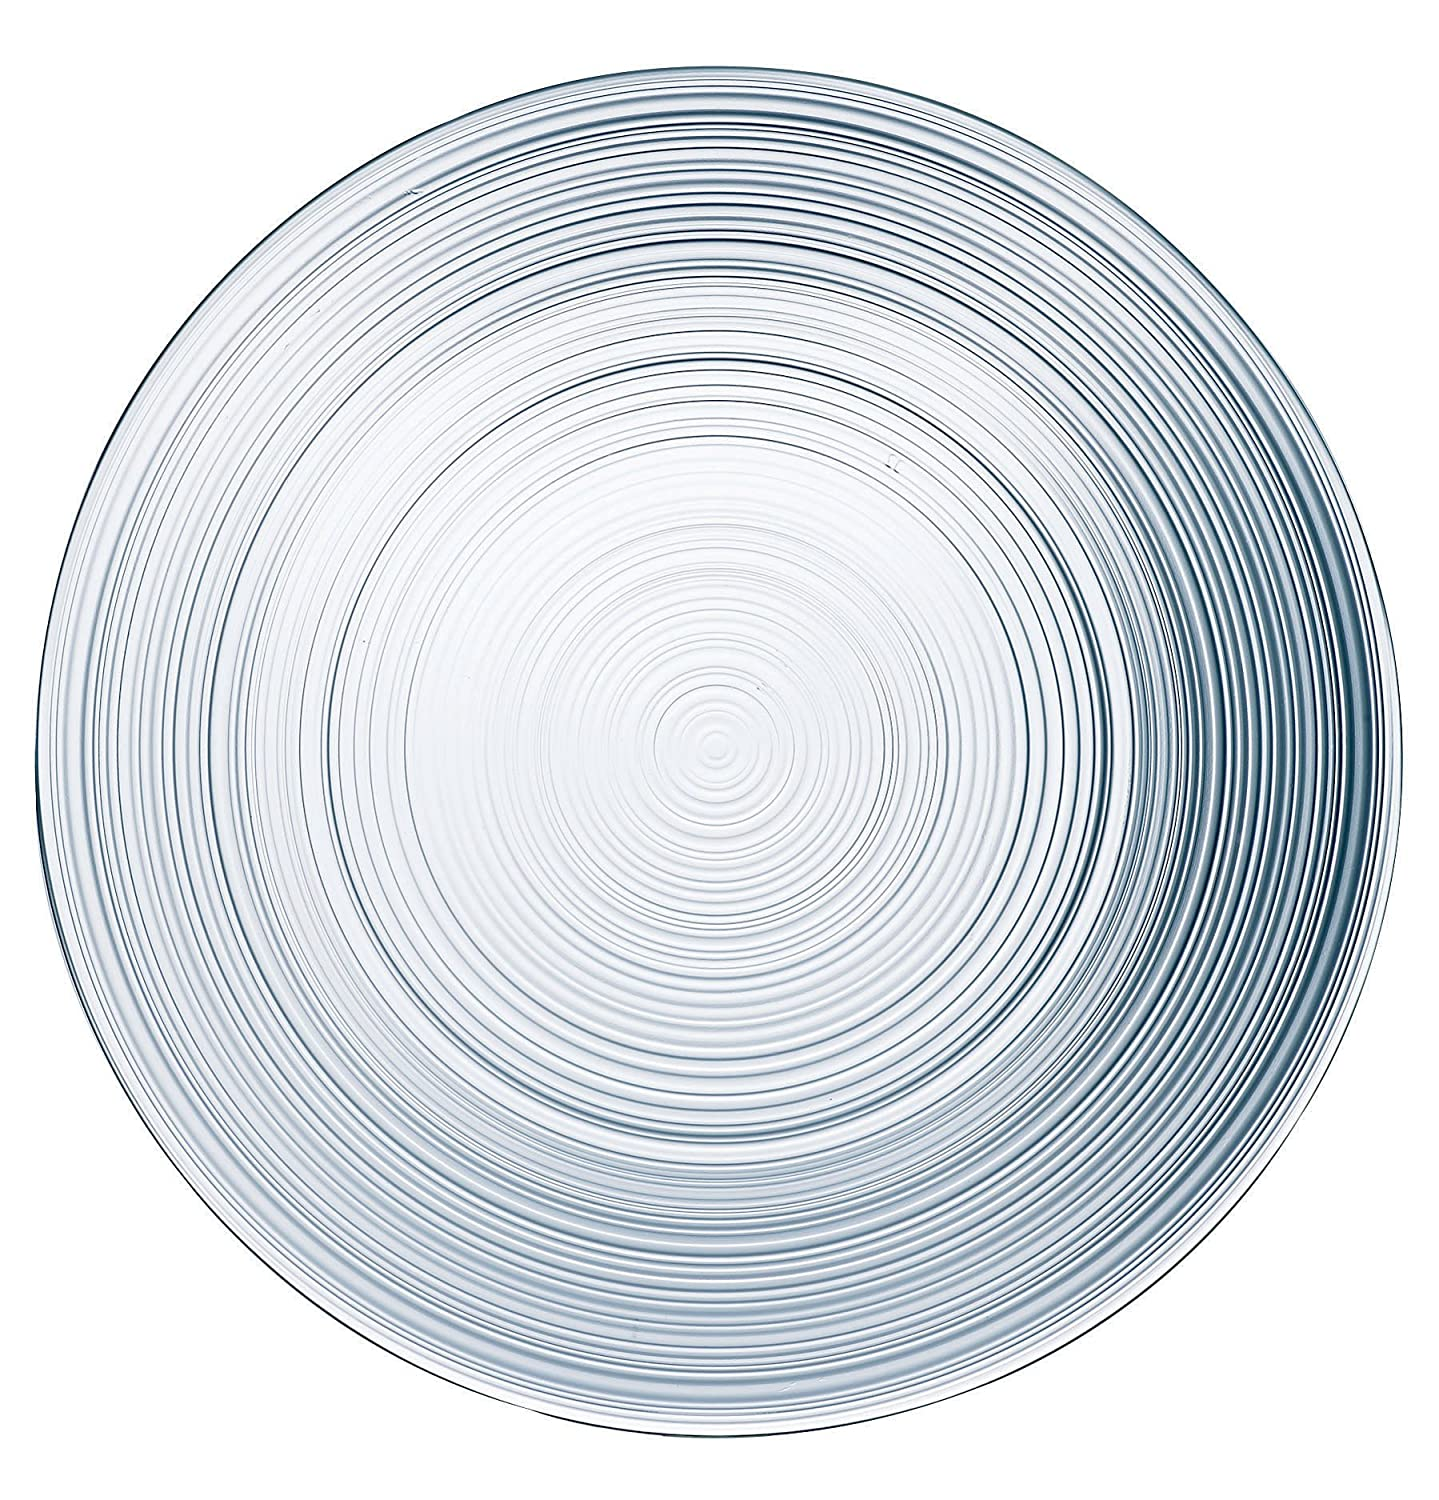 Arc International Santa Fe Dinner Plate, 10.5-Inch, Set of 6 Blockhouse Arc 116833